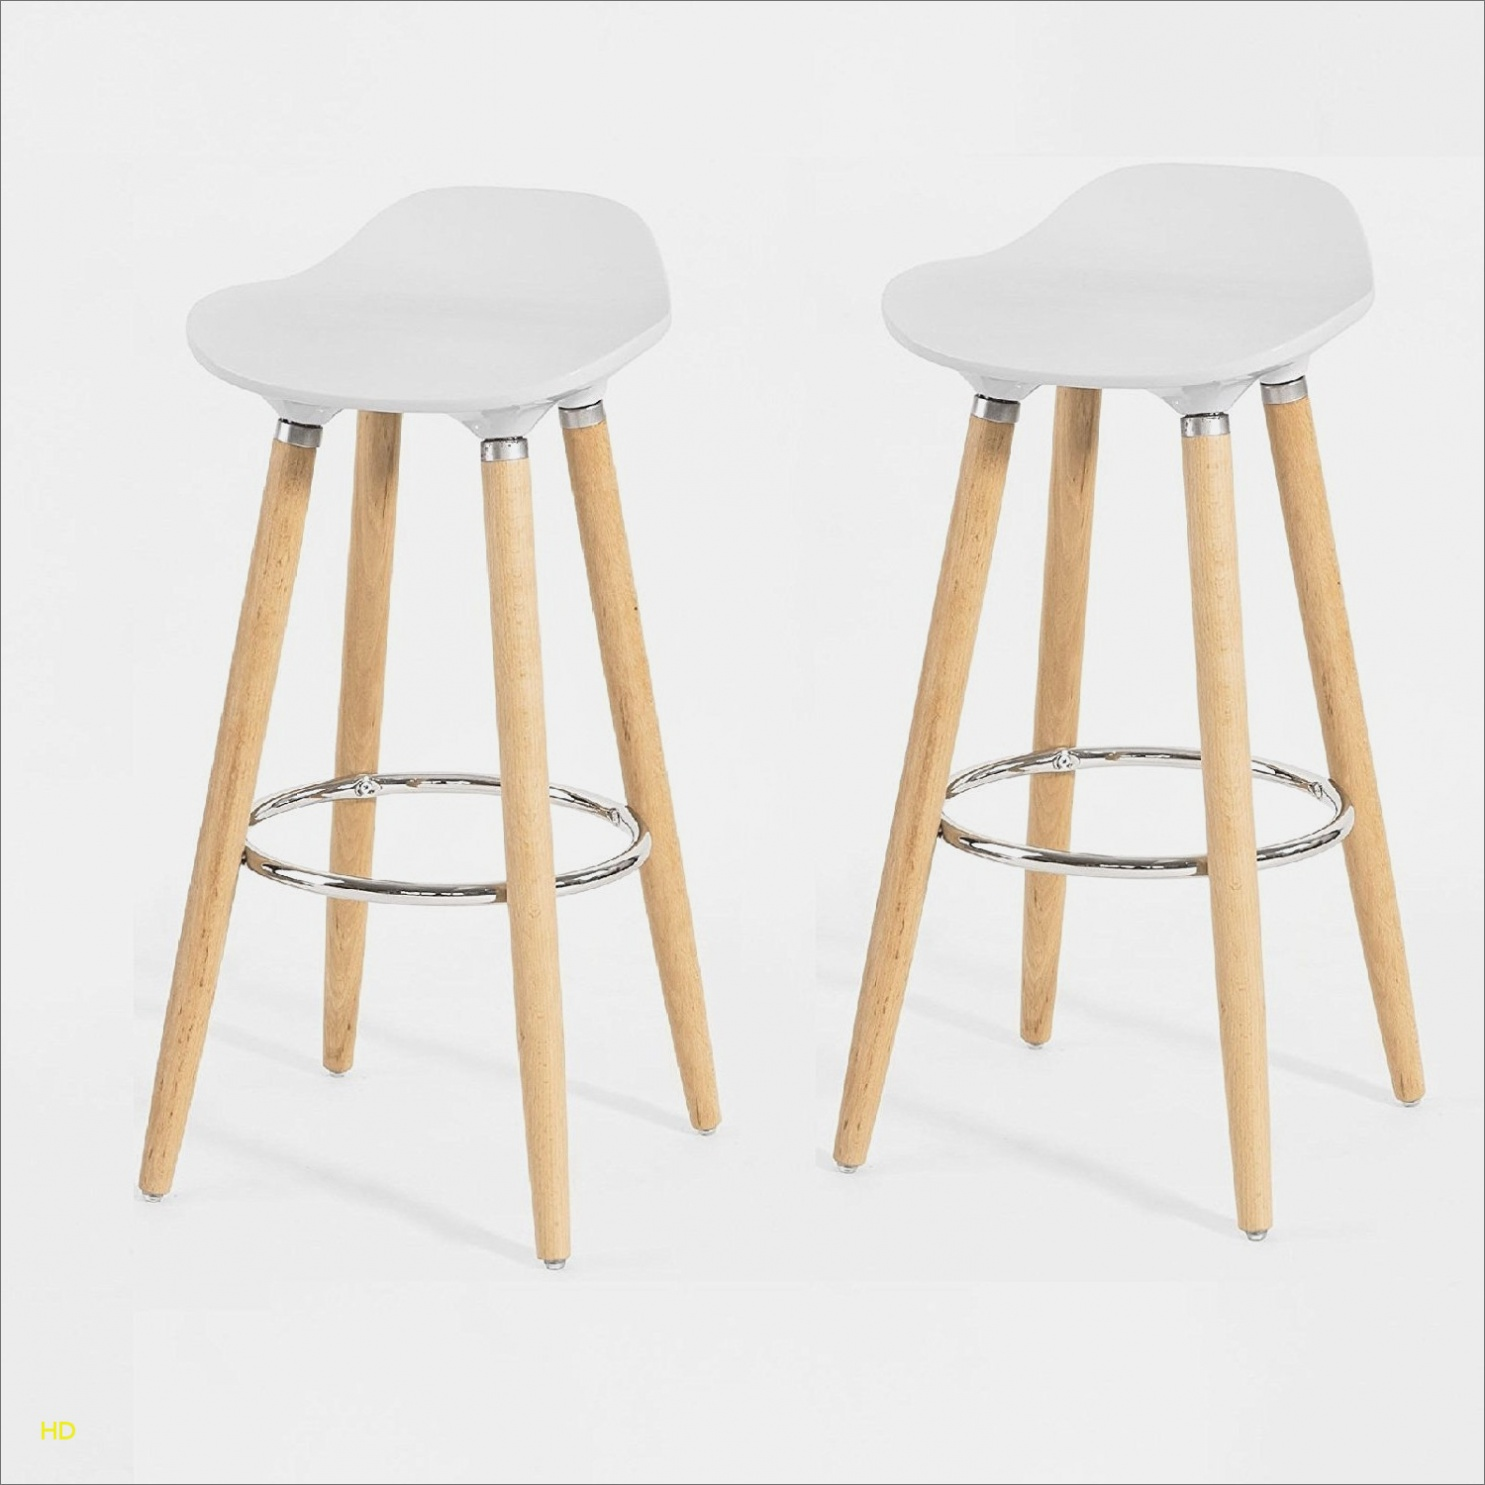 pouf repose pied fly elegant s beau tabouret de bar pied bois tabouret repose pied of tabouret repose pied